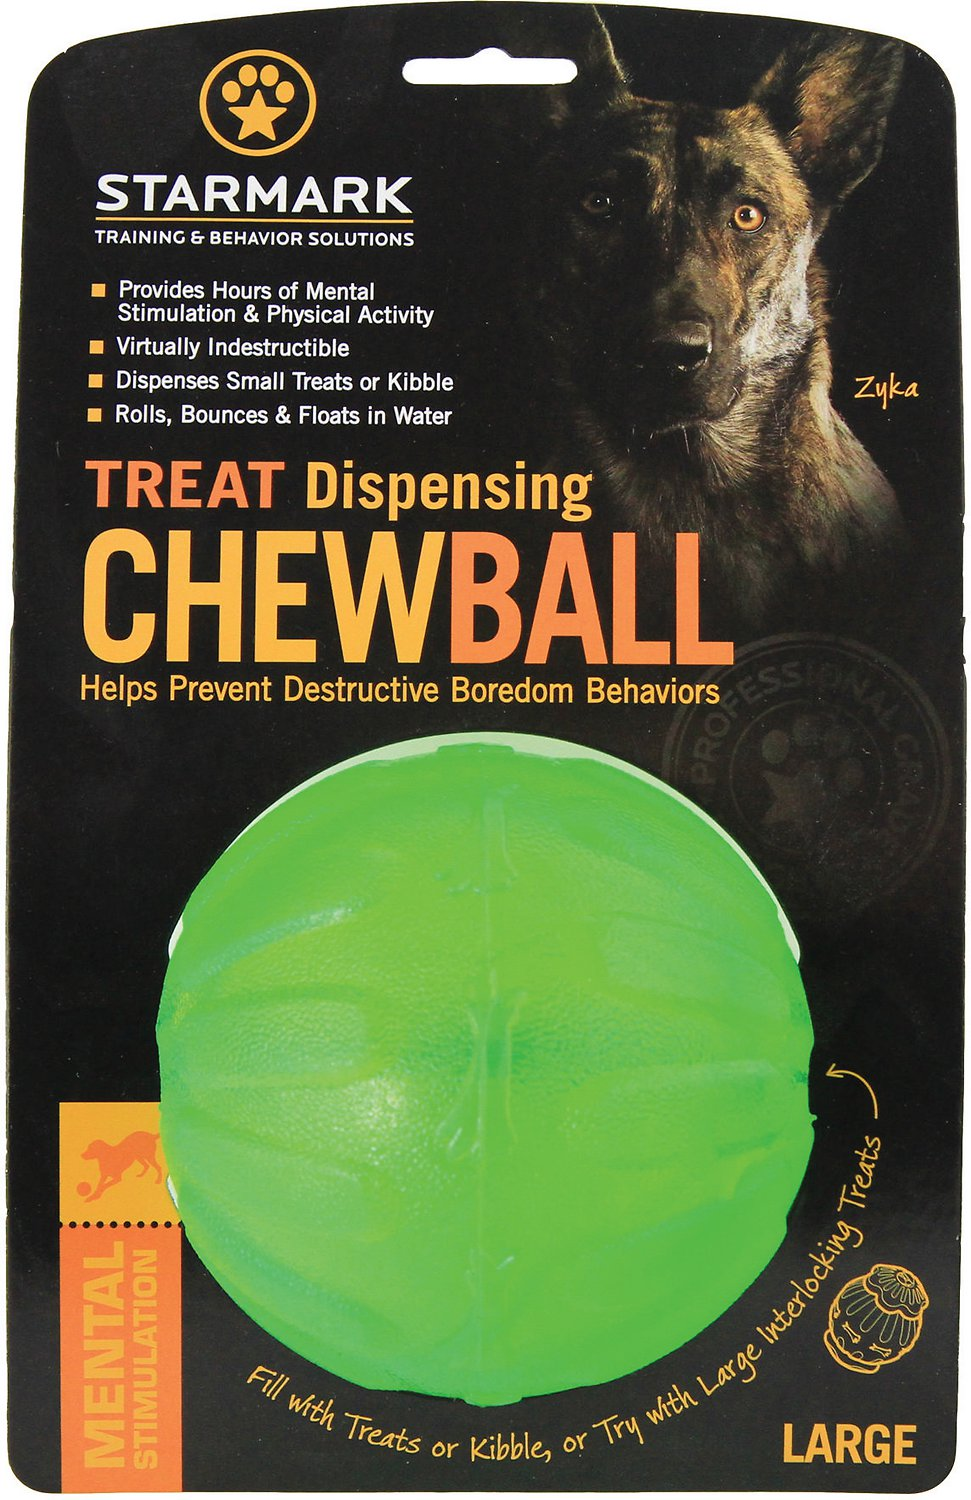 The Everlasting Treat Ball